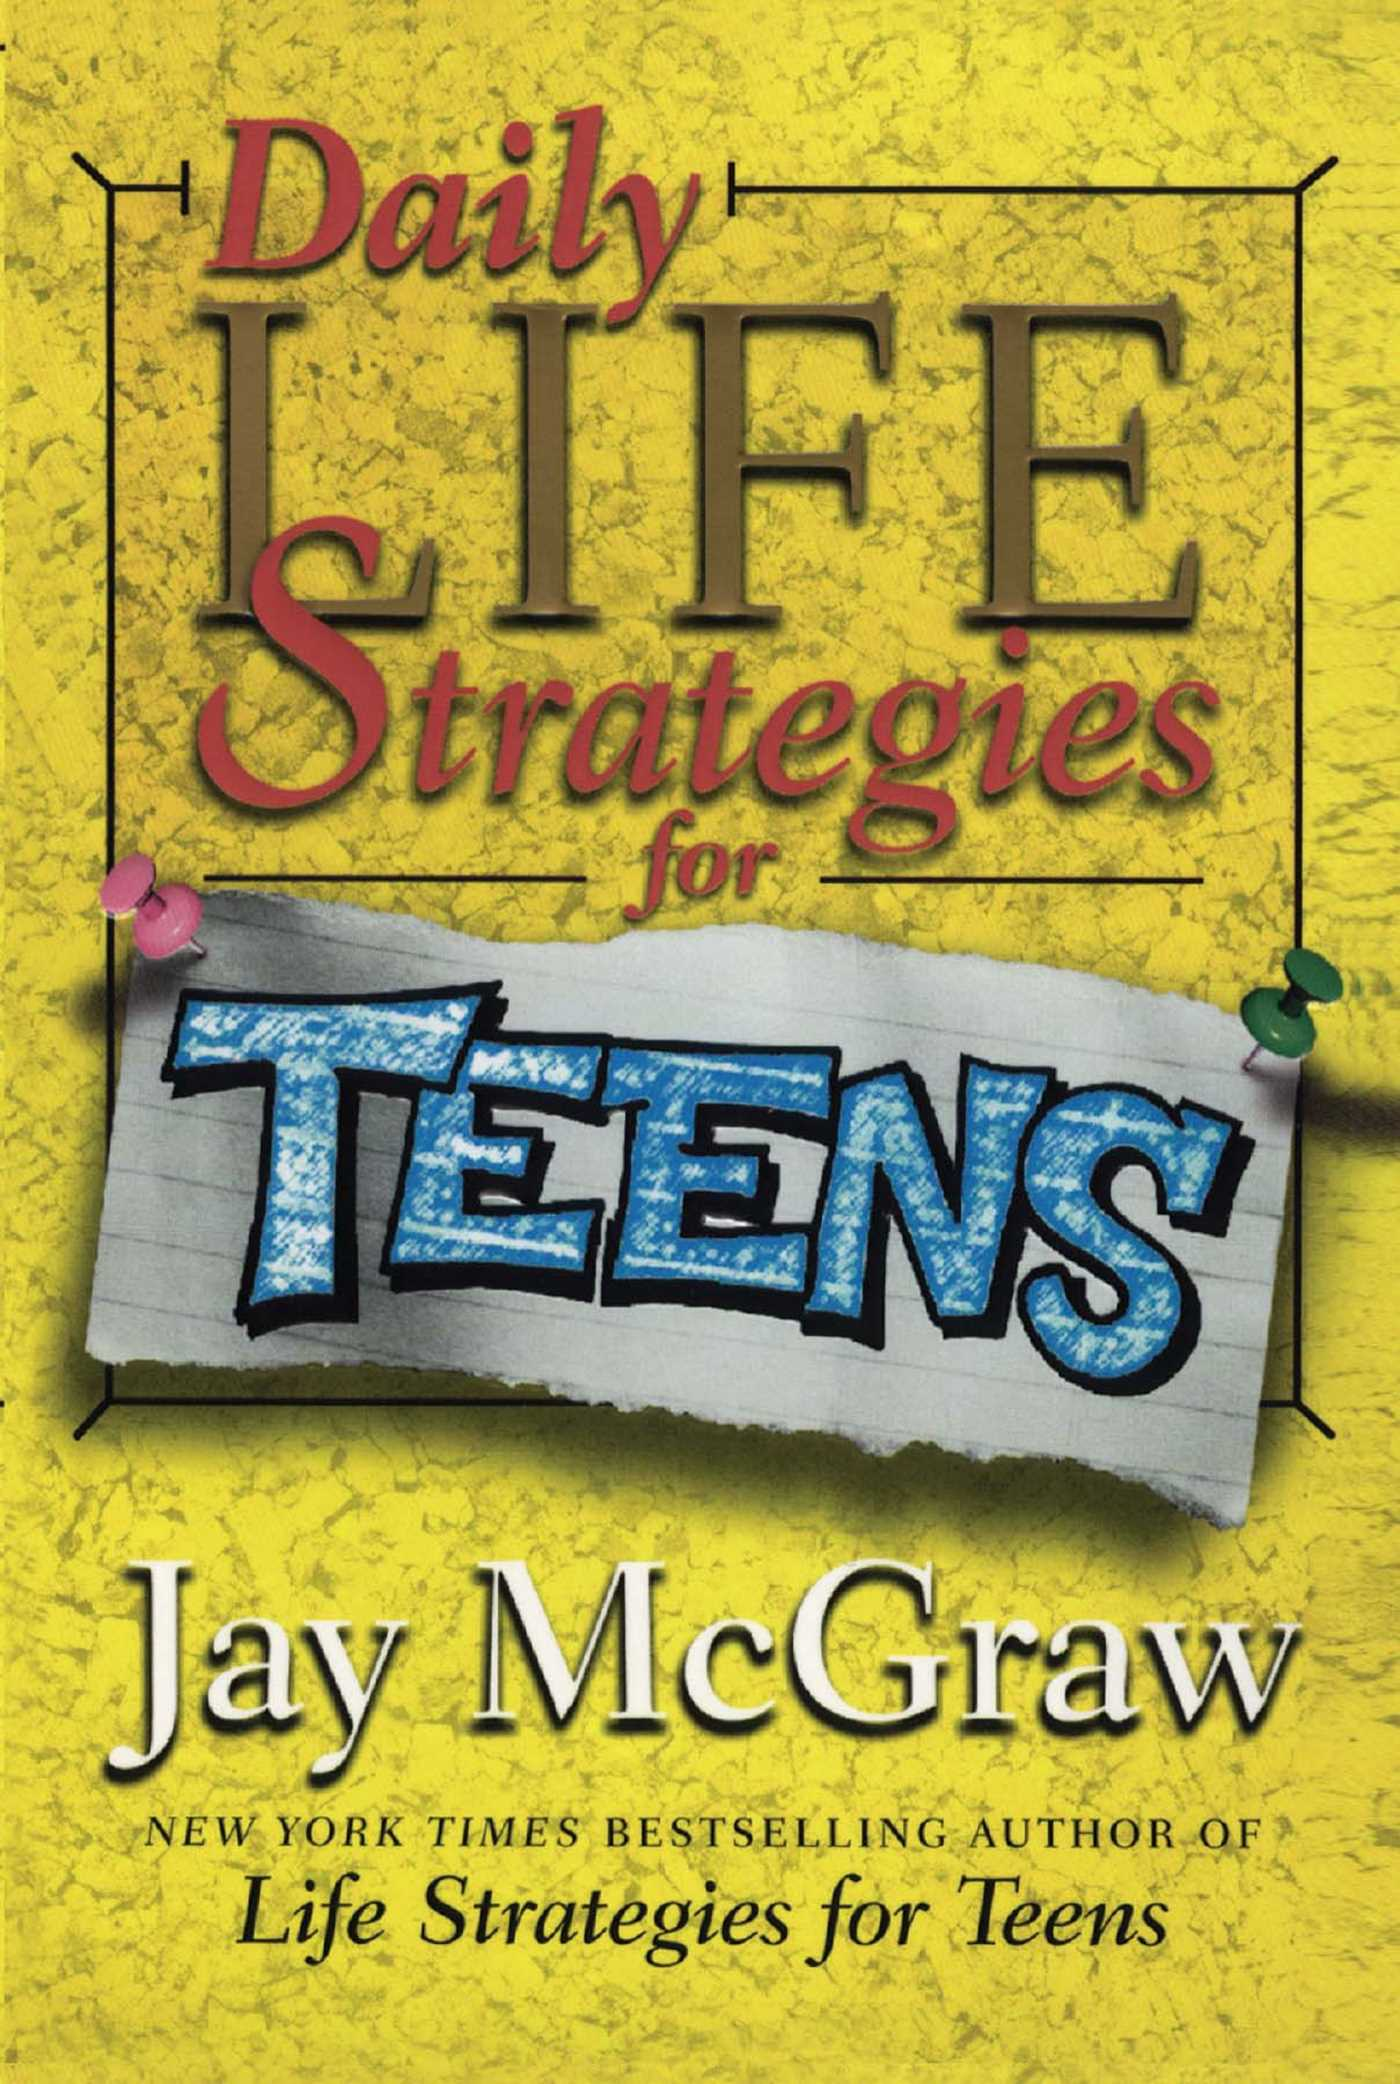 Daily-life-strategies-for-teens-9780743224710_hr